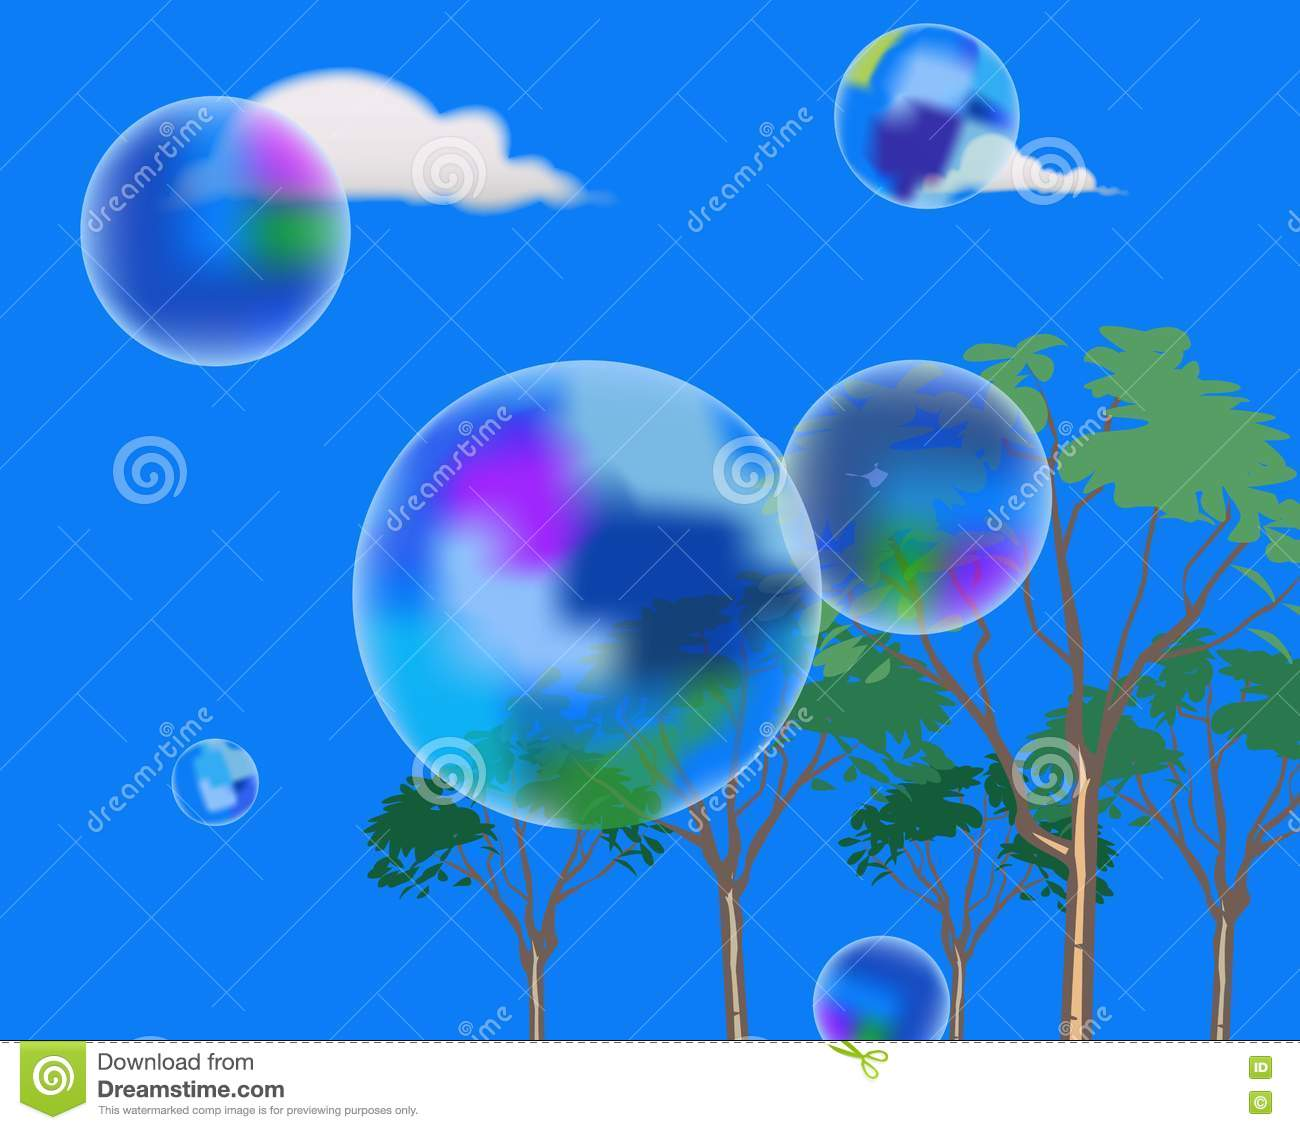 Soap bubbles in the sky stock illustration. Illustration ...